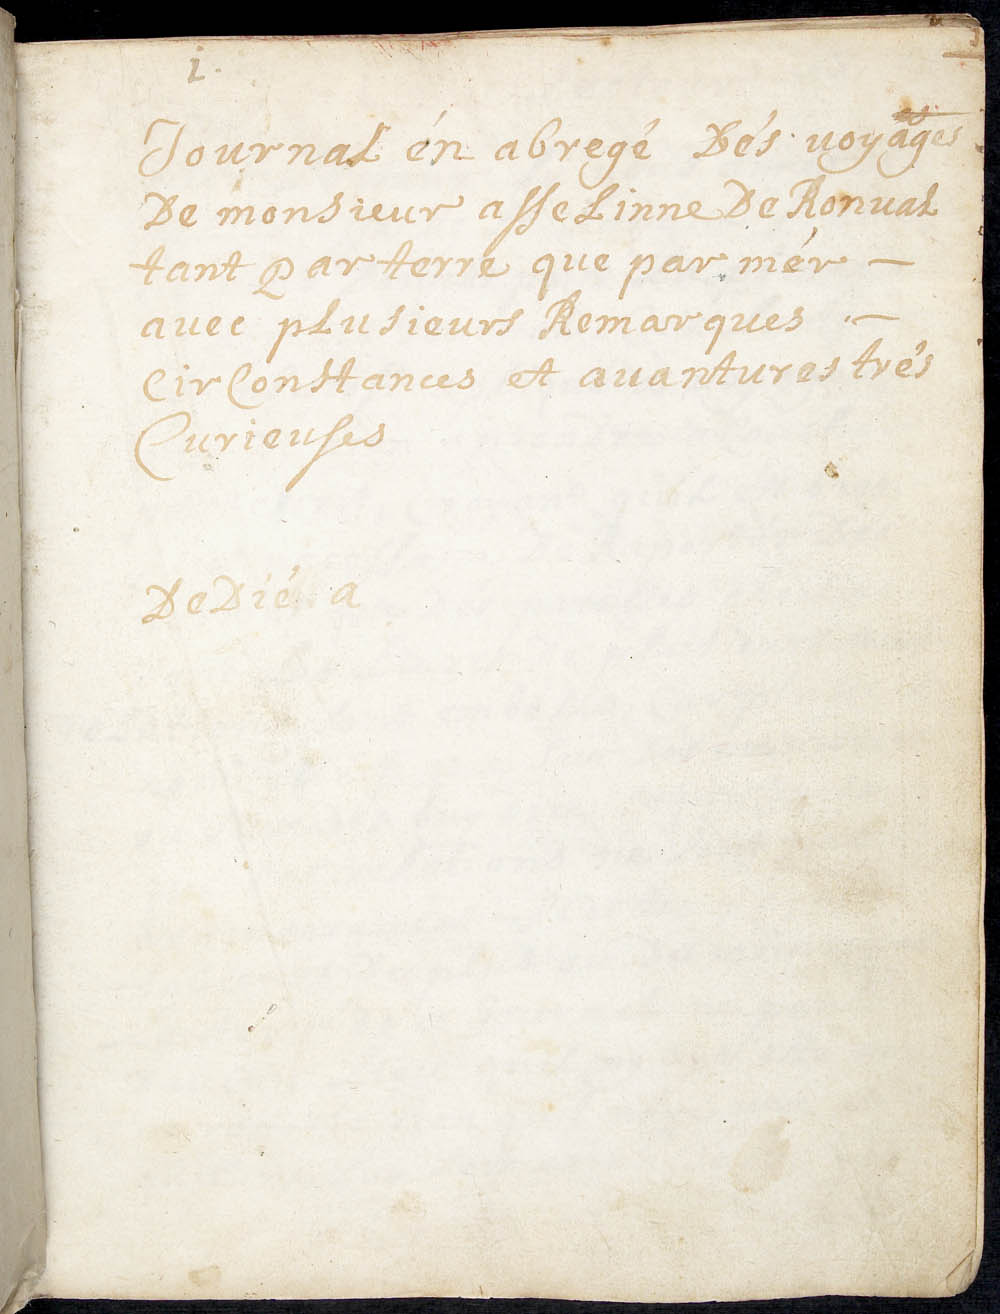 Abridged diary of the travels of Monsieur Asseline de Ronval, by land and by sea, with various comments, circumstances and most curious adventures], ca. 1695 CA ANC MG18-J2 p.1-36